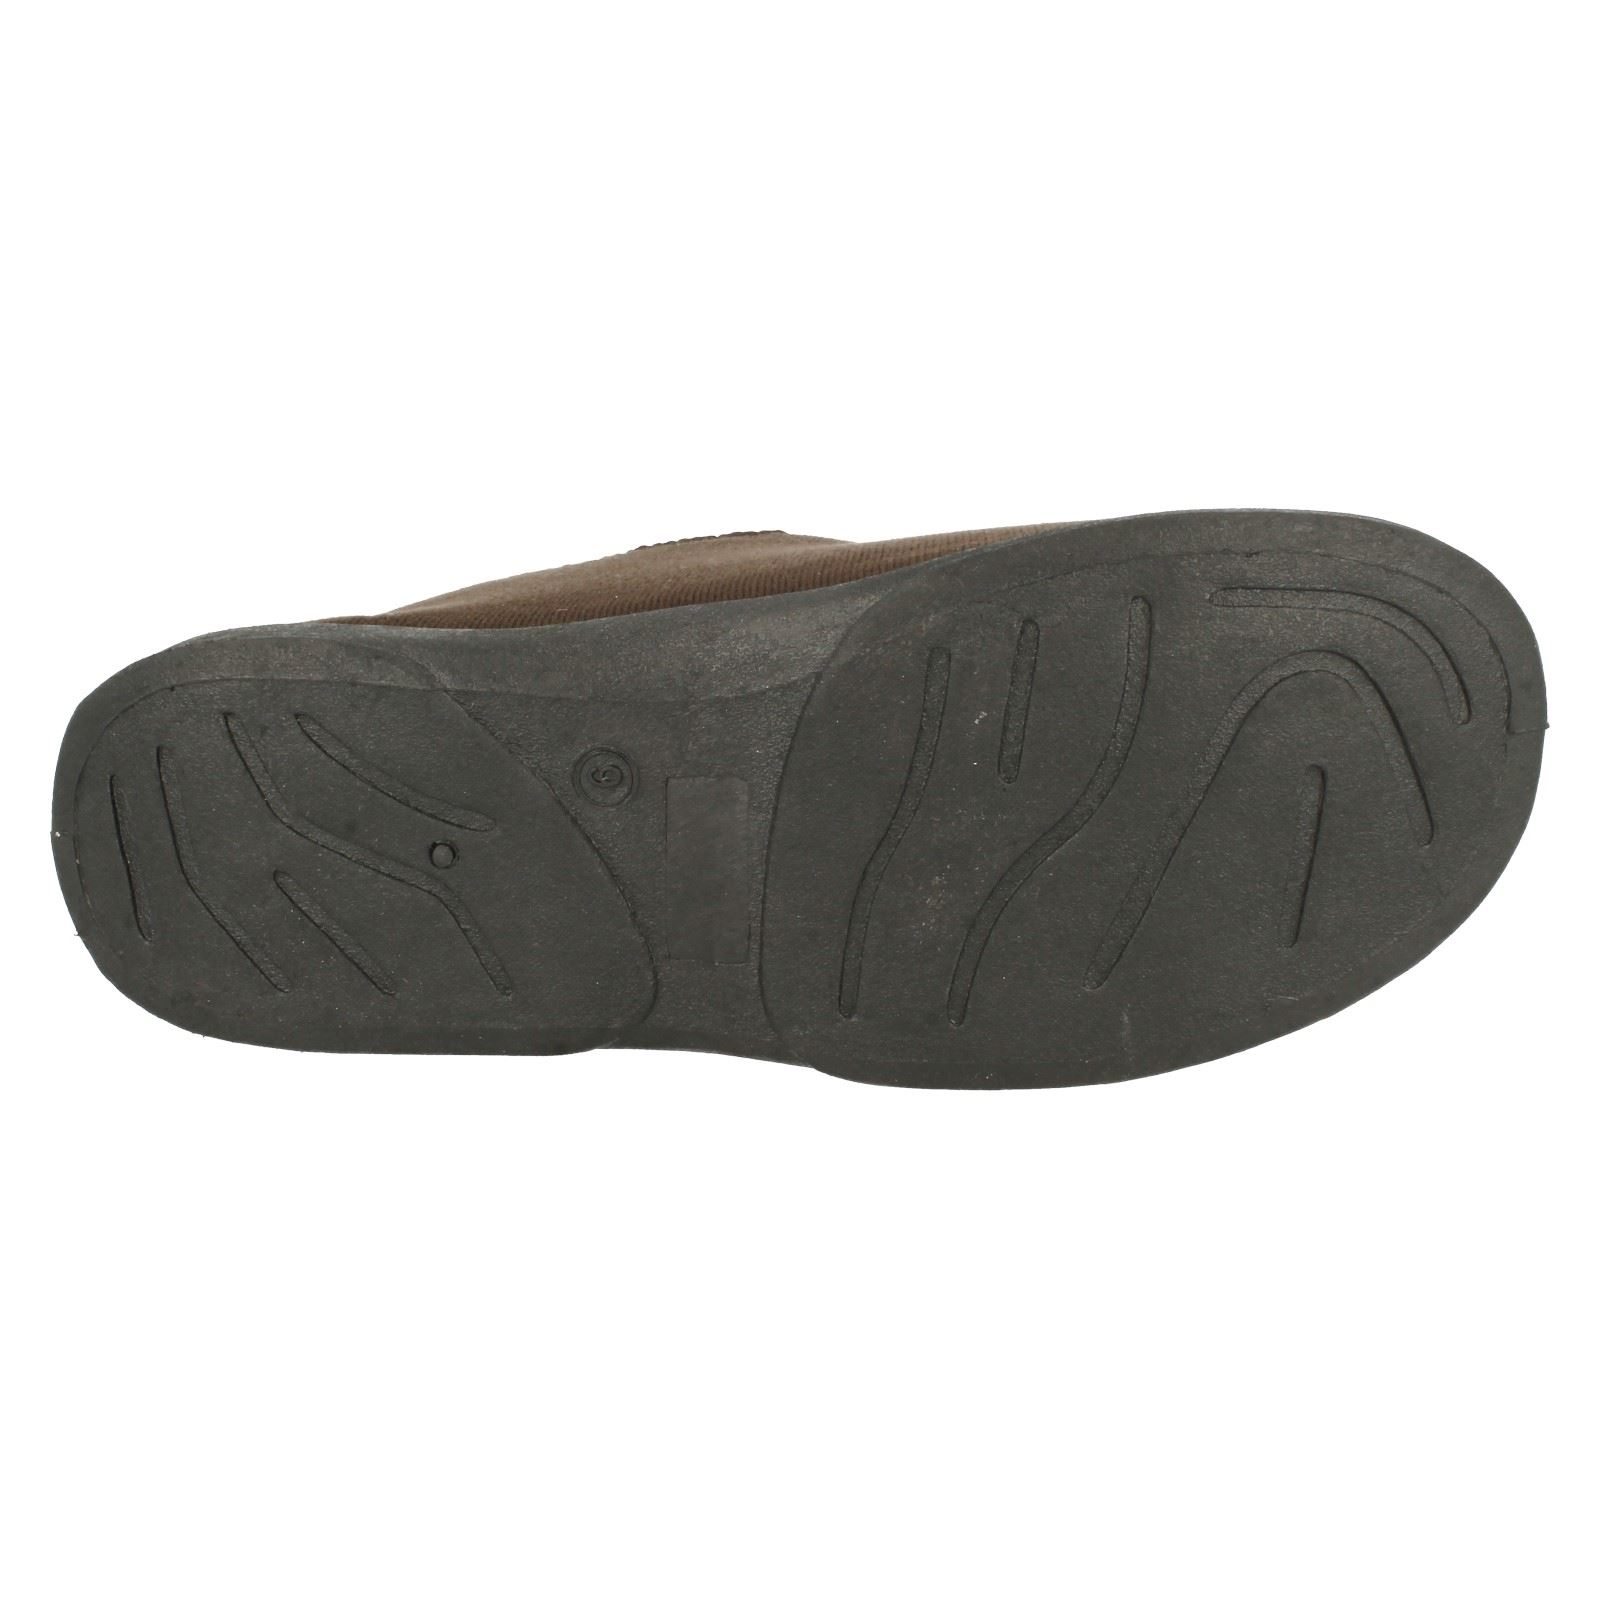 Mens-Natureform-Strap-Slippers-039-Arthur-039